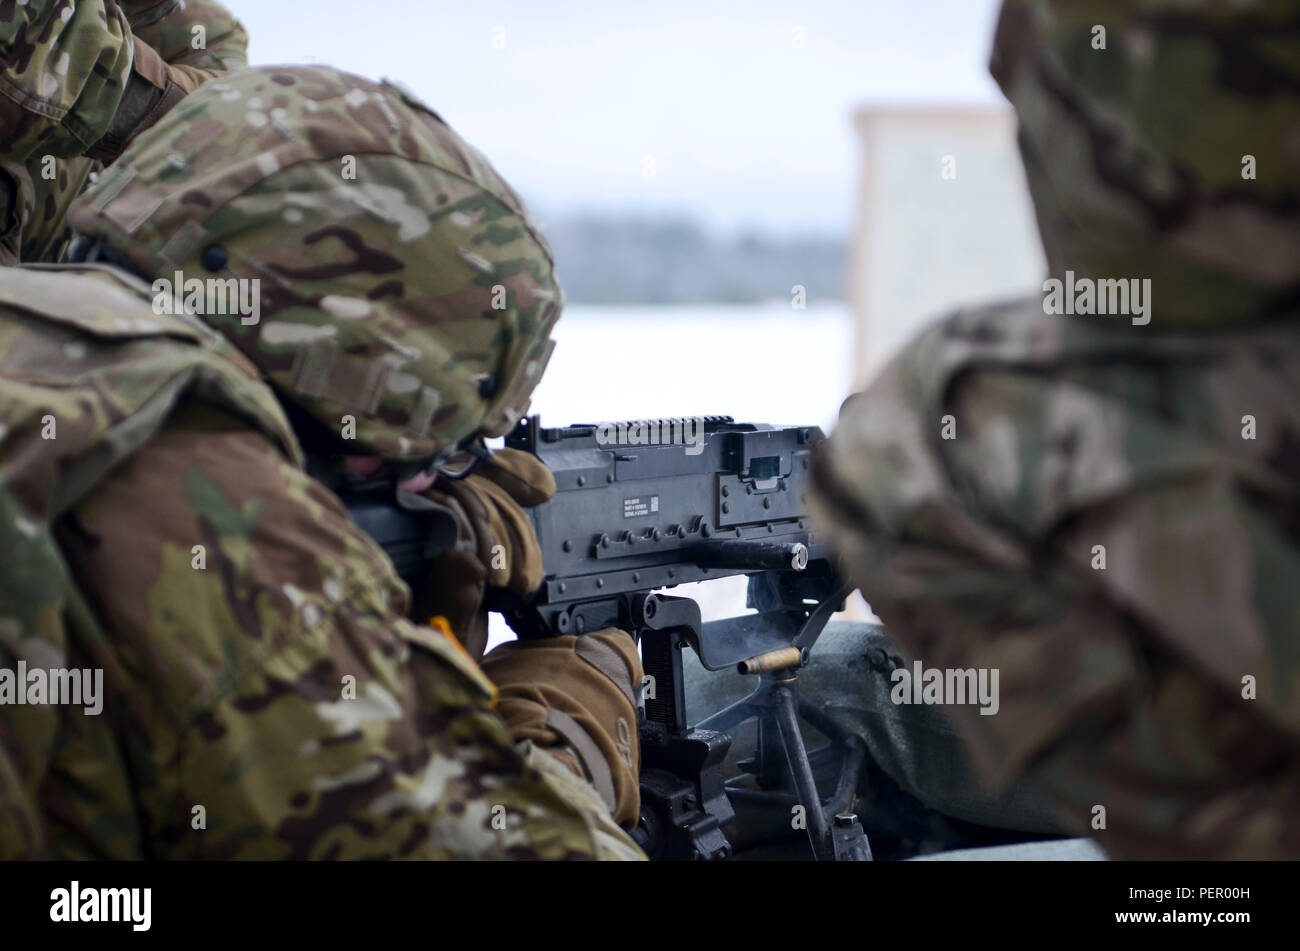 A round is ejected from an M240 machine gun as a Soldier of 3rd Squadron, 2nd Cavalry Regiment, stationed at Vilseck, Germany, fires the weapon during a training exercise at Adazi Training Area in Latvia, Jan. 25, 2016. (U.S. Army photo by Staff Sgt. Steven Colvin/Released) - Stock Image